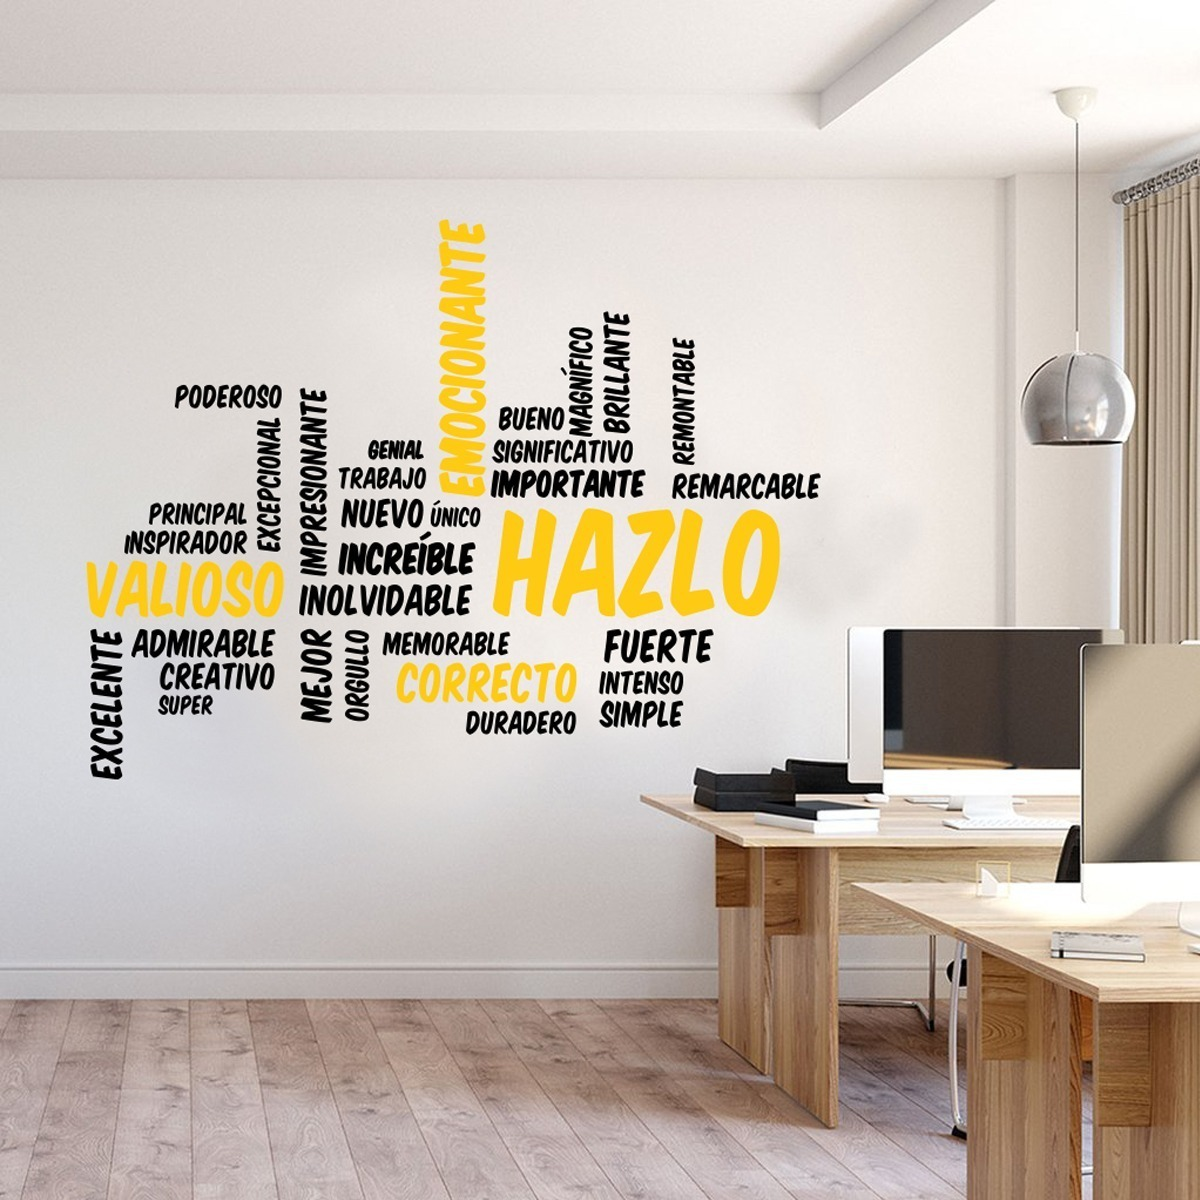 Vinil Decorativo Frases Motivacional Para Oficinas Estudio Make It Hazlo 120x92cm Varios Colores